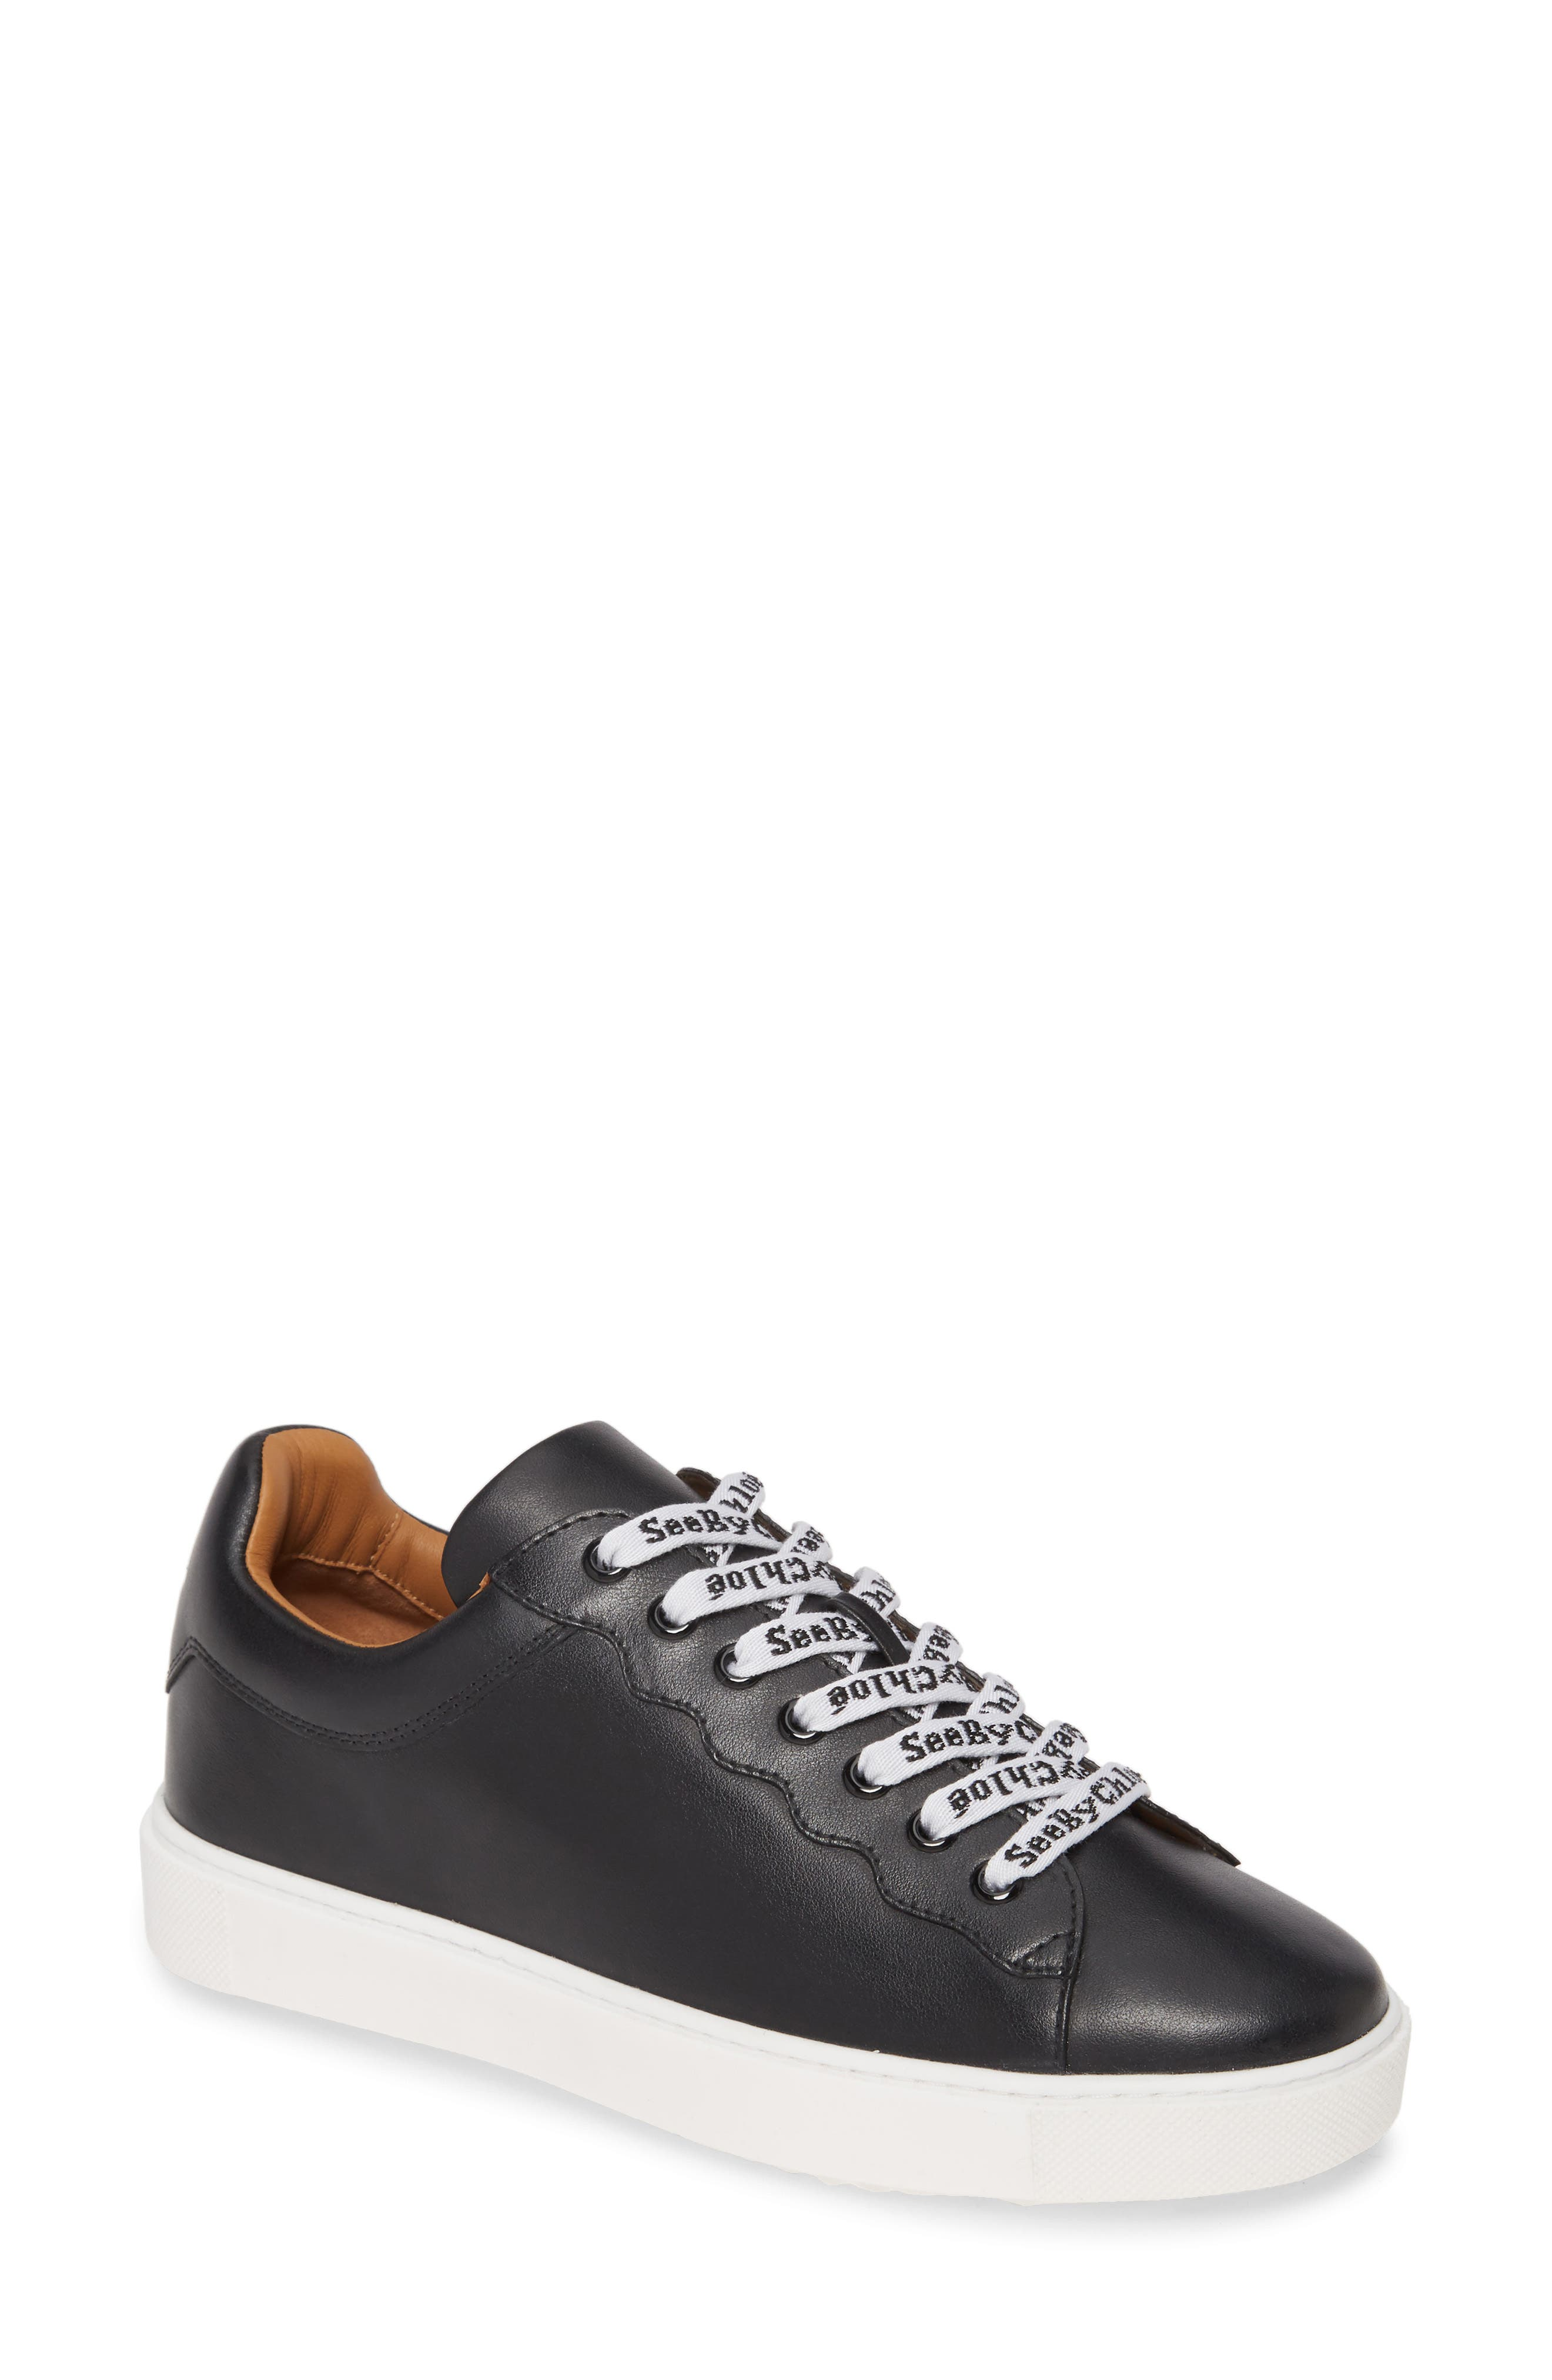 Women's See by Chloé Shoes | Nordstrom